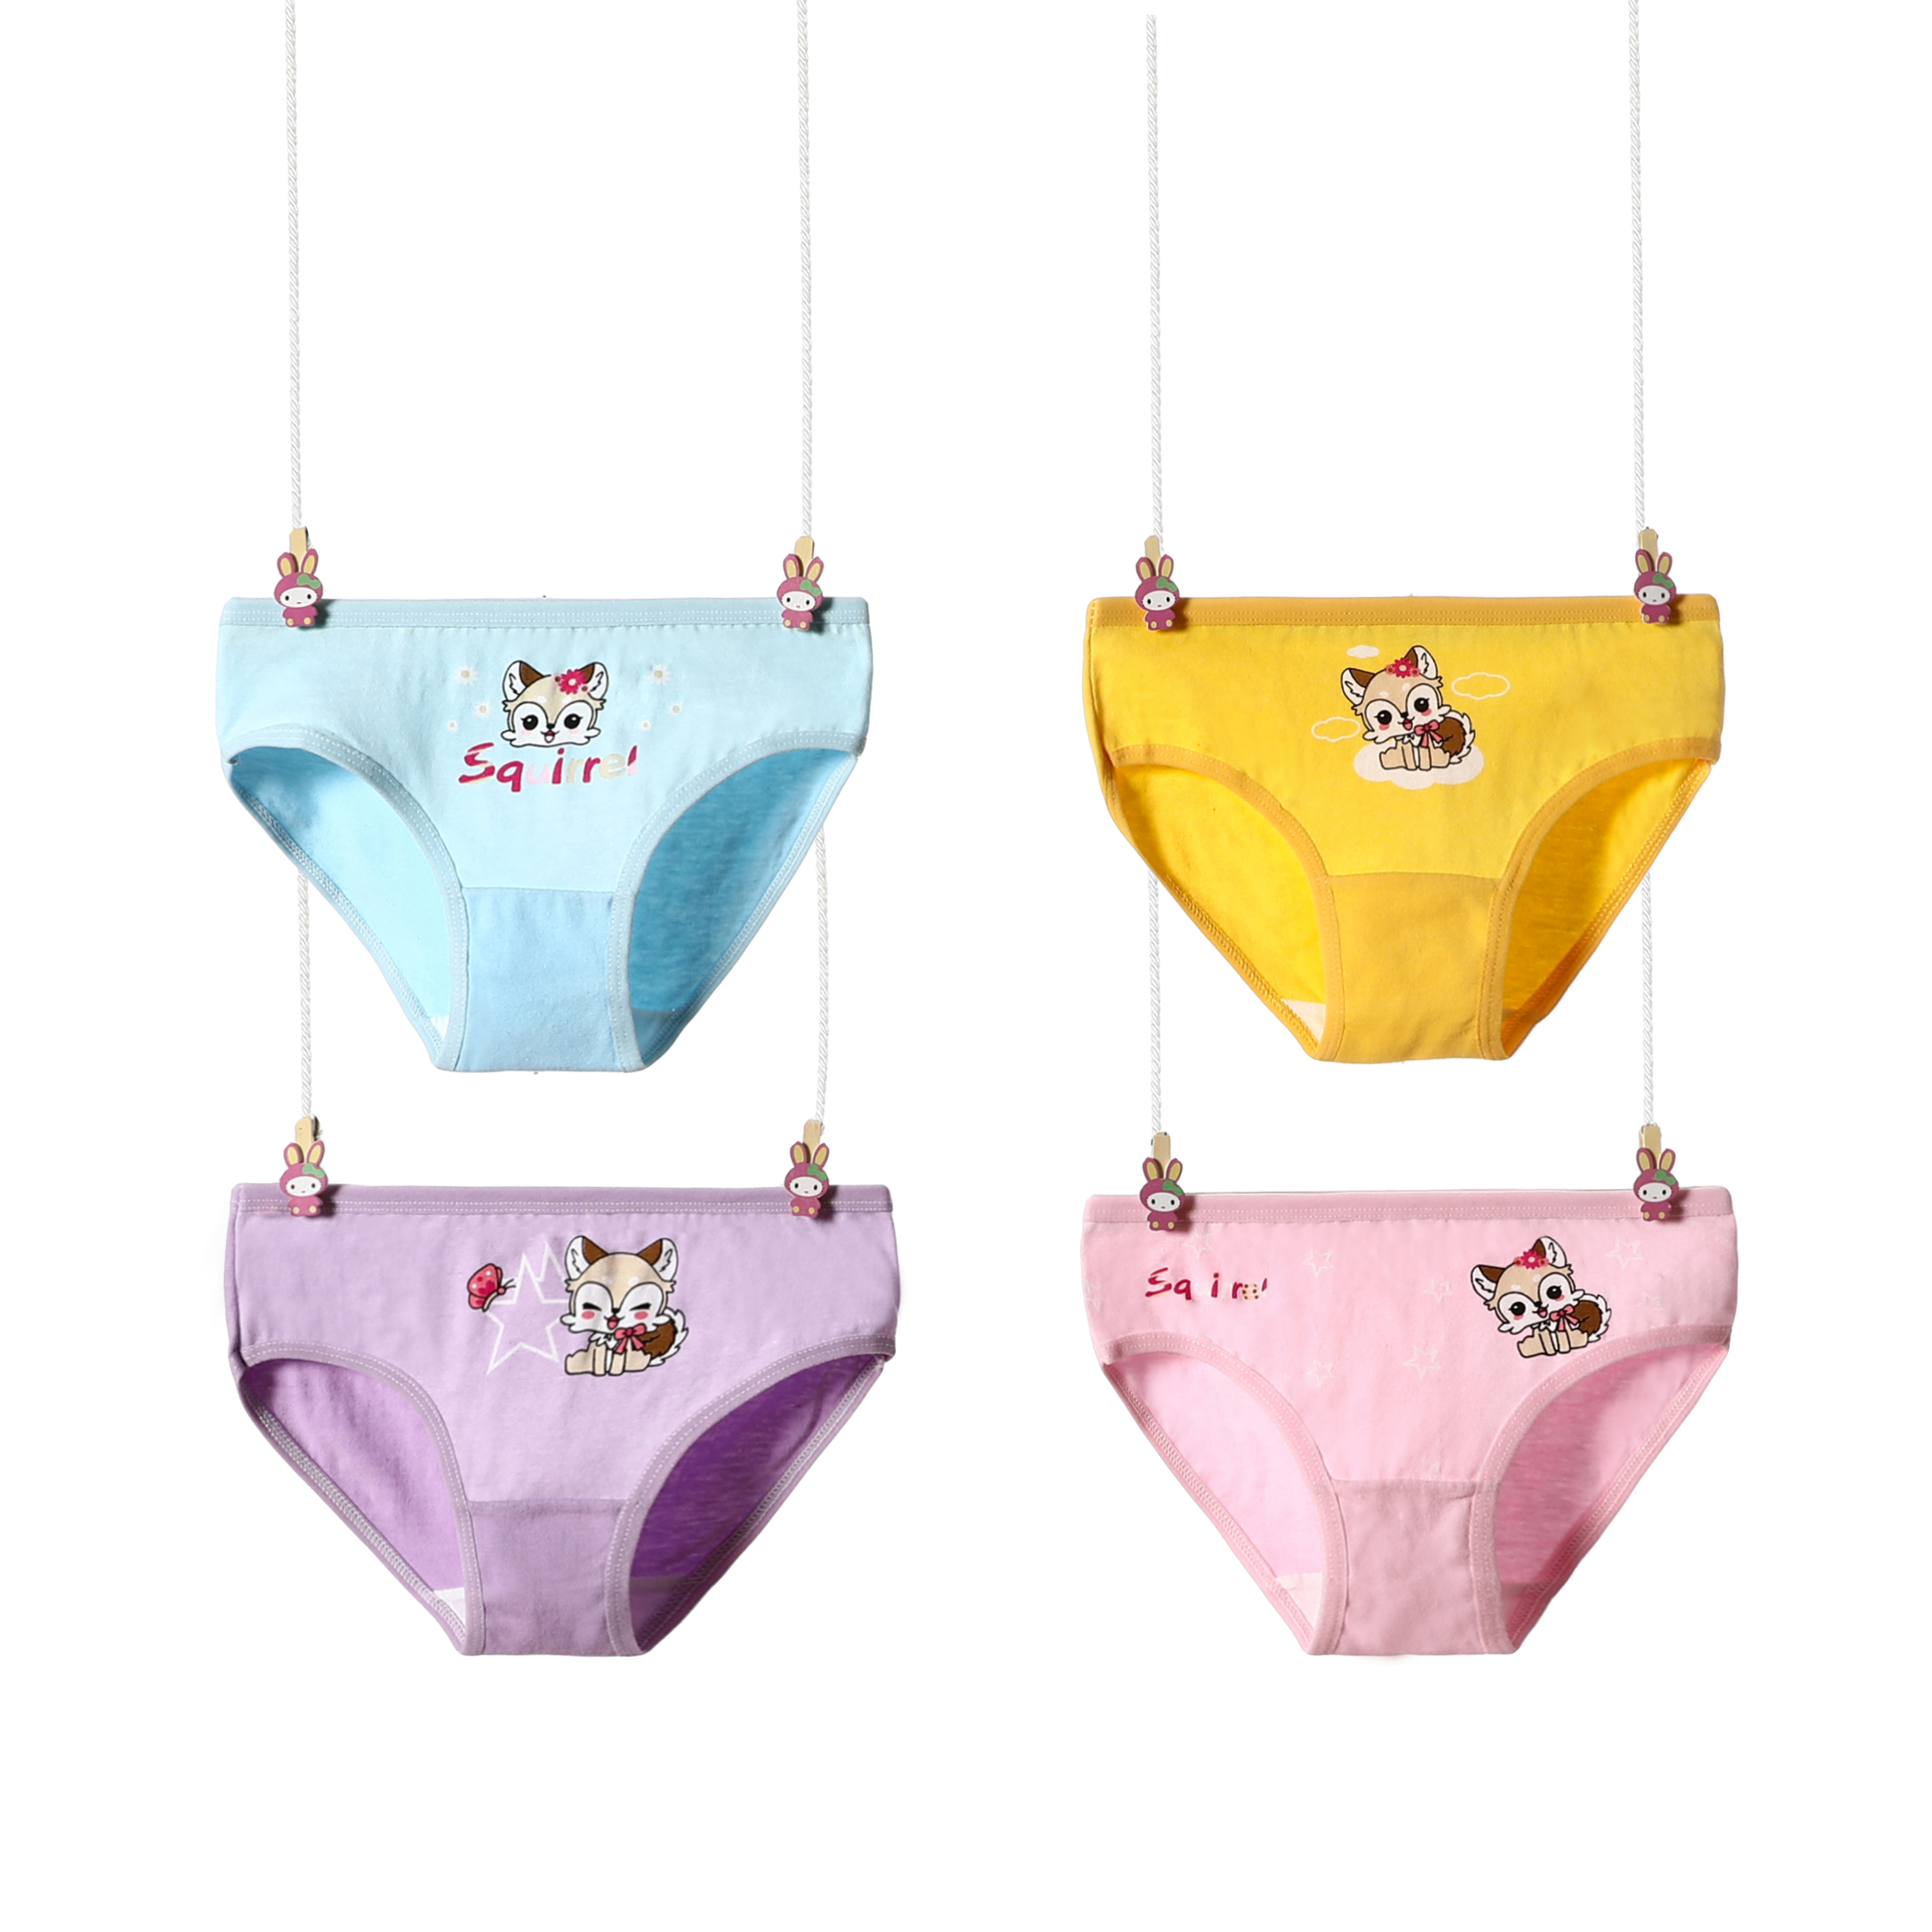 4 Pcs/Lot Girls Briefs Soft Cotton Children Panties Lovely Cute Cartoon  Baby Girls Underwear Breathable Girl Panties For 2-12Y - Hot Promo #51205D  | Cicig